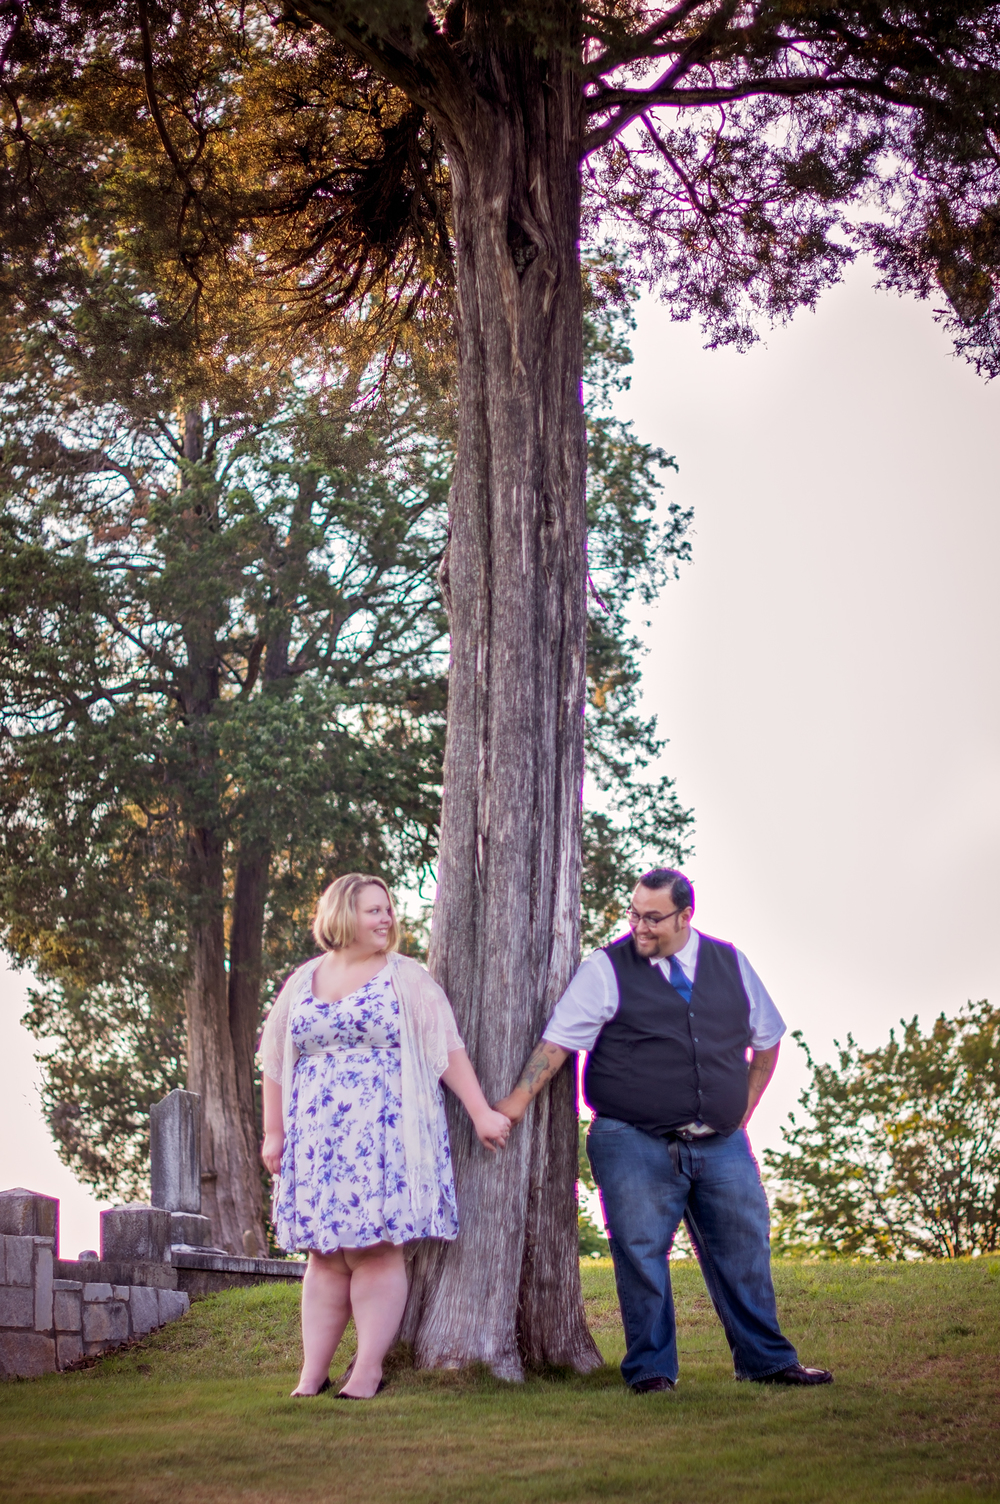 Outside Engagement session with beautiful tree in Marietta, GA